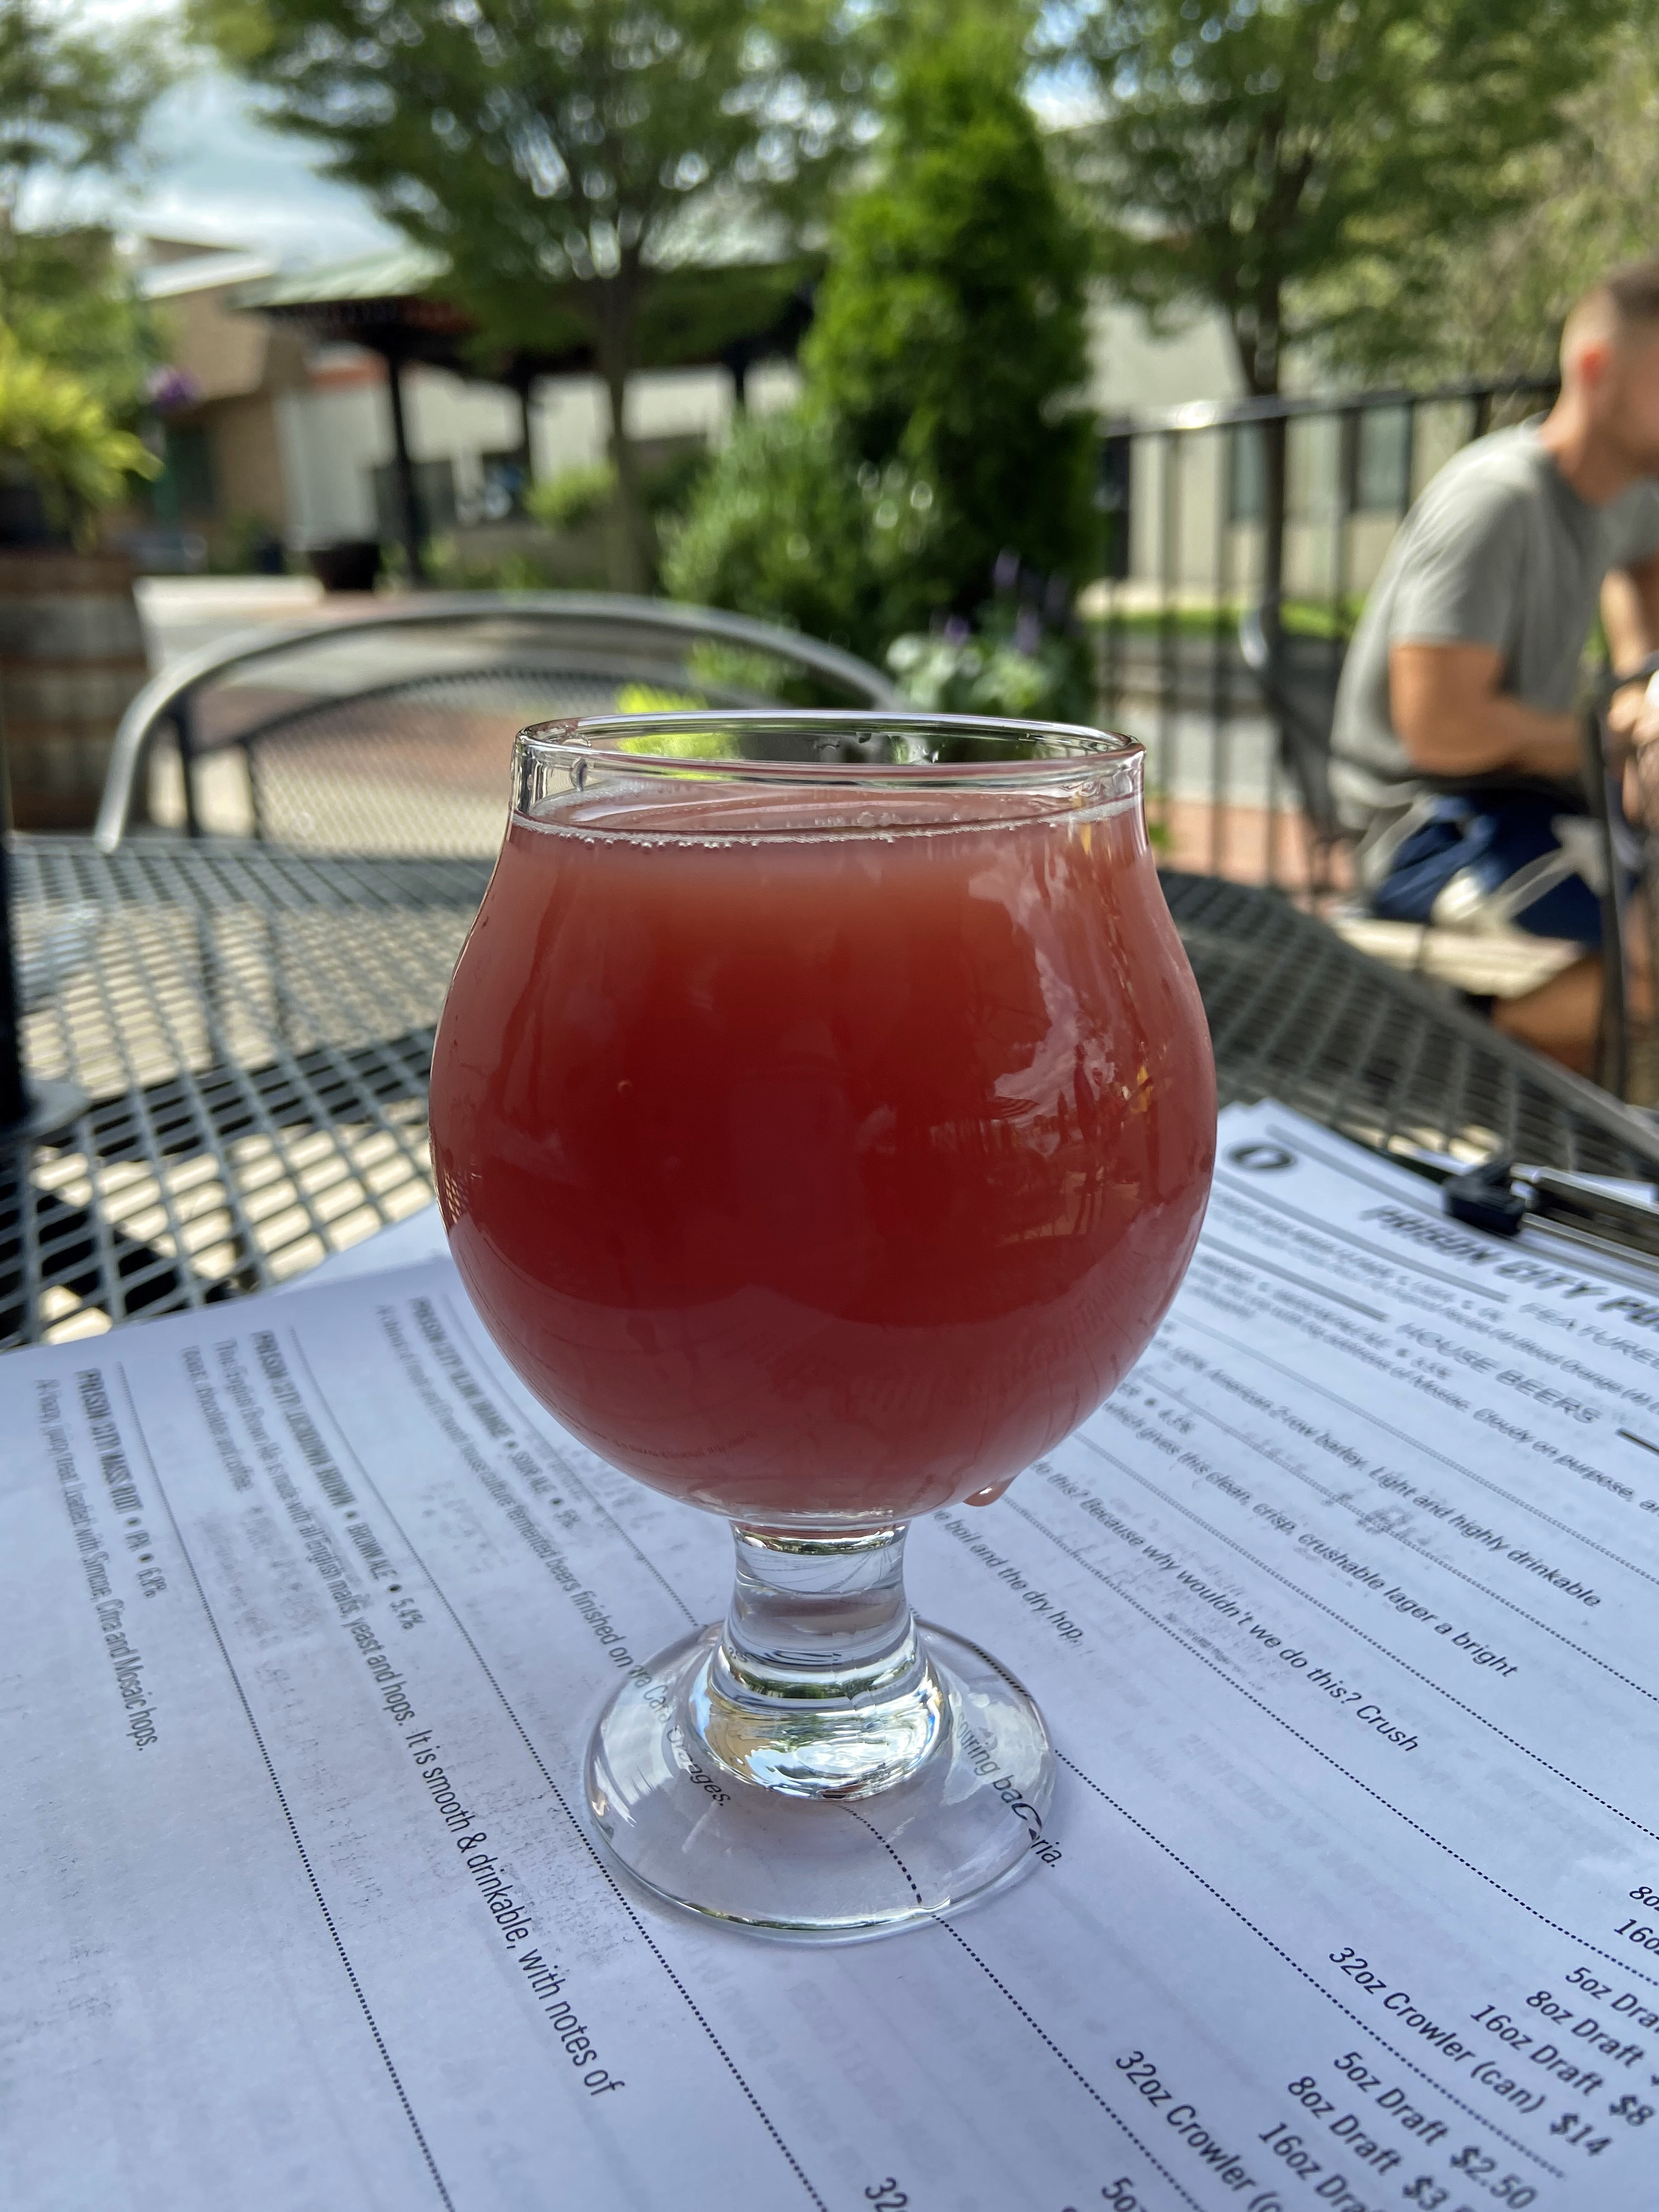 Across from a prison in Auburn, Prison City Brewery in Auburn serves great drinks (blood orange plays a role in this one) and good food. The Finger Lakes region is known for its good food and wine trail.